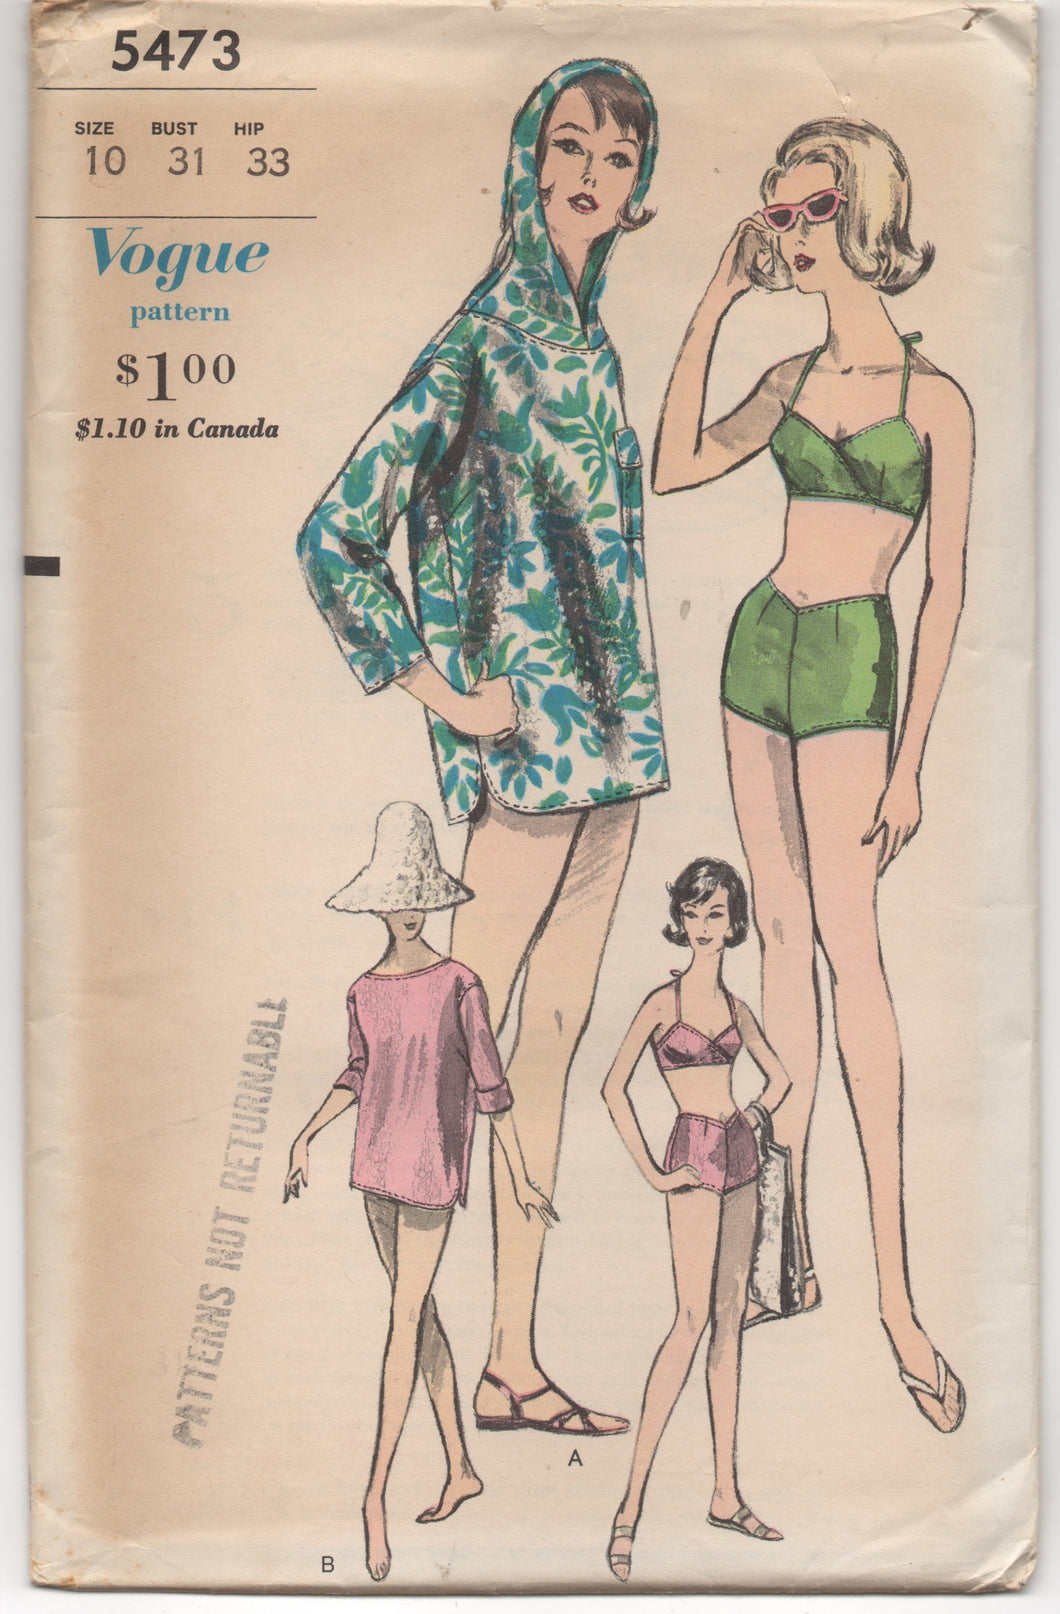 1960's Vogue Two Piece Bathing Suit, and Hooded Cover Up - Bust 31